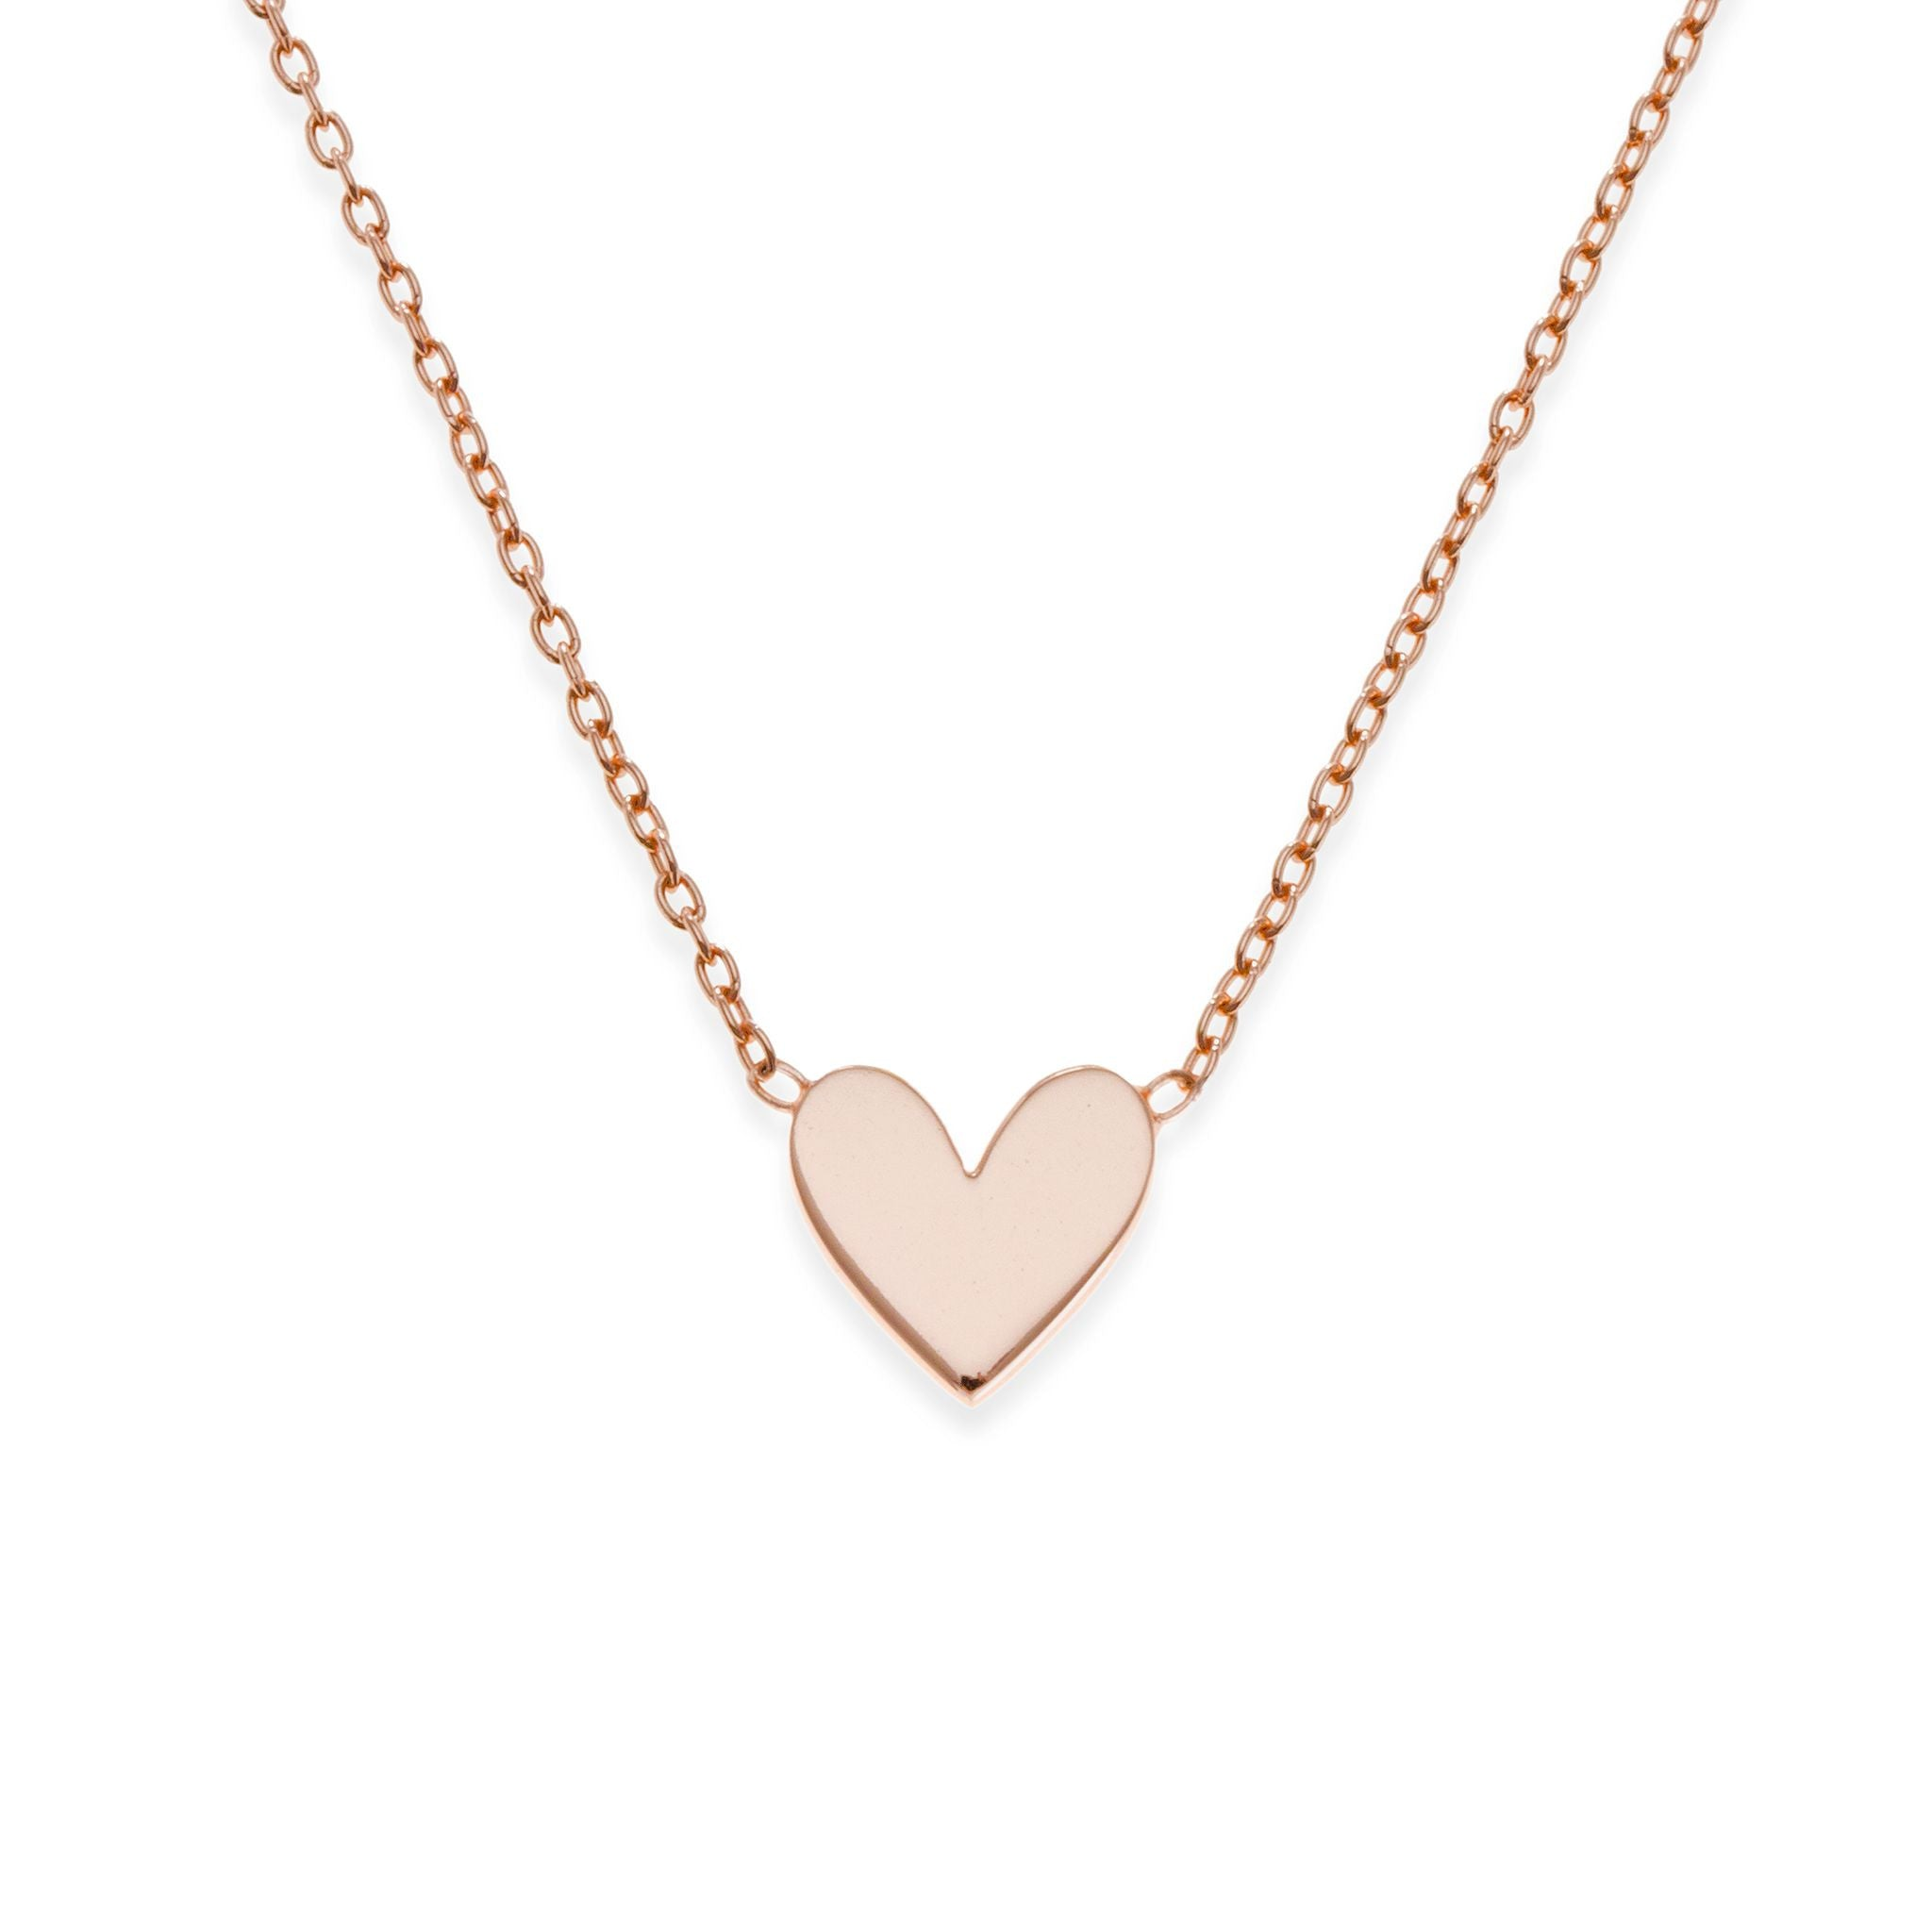 Sterling silver heart necklace mother daughter jewelry kith 18k rose gold plated heart necklace mother daughter jewelry kith kin aloadofball Images